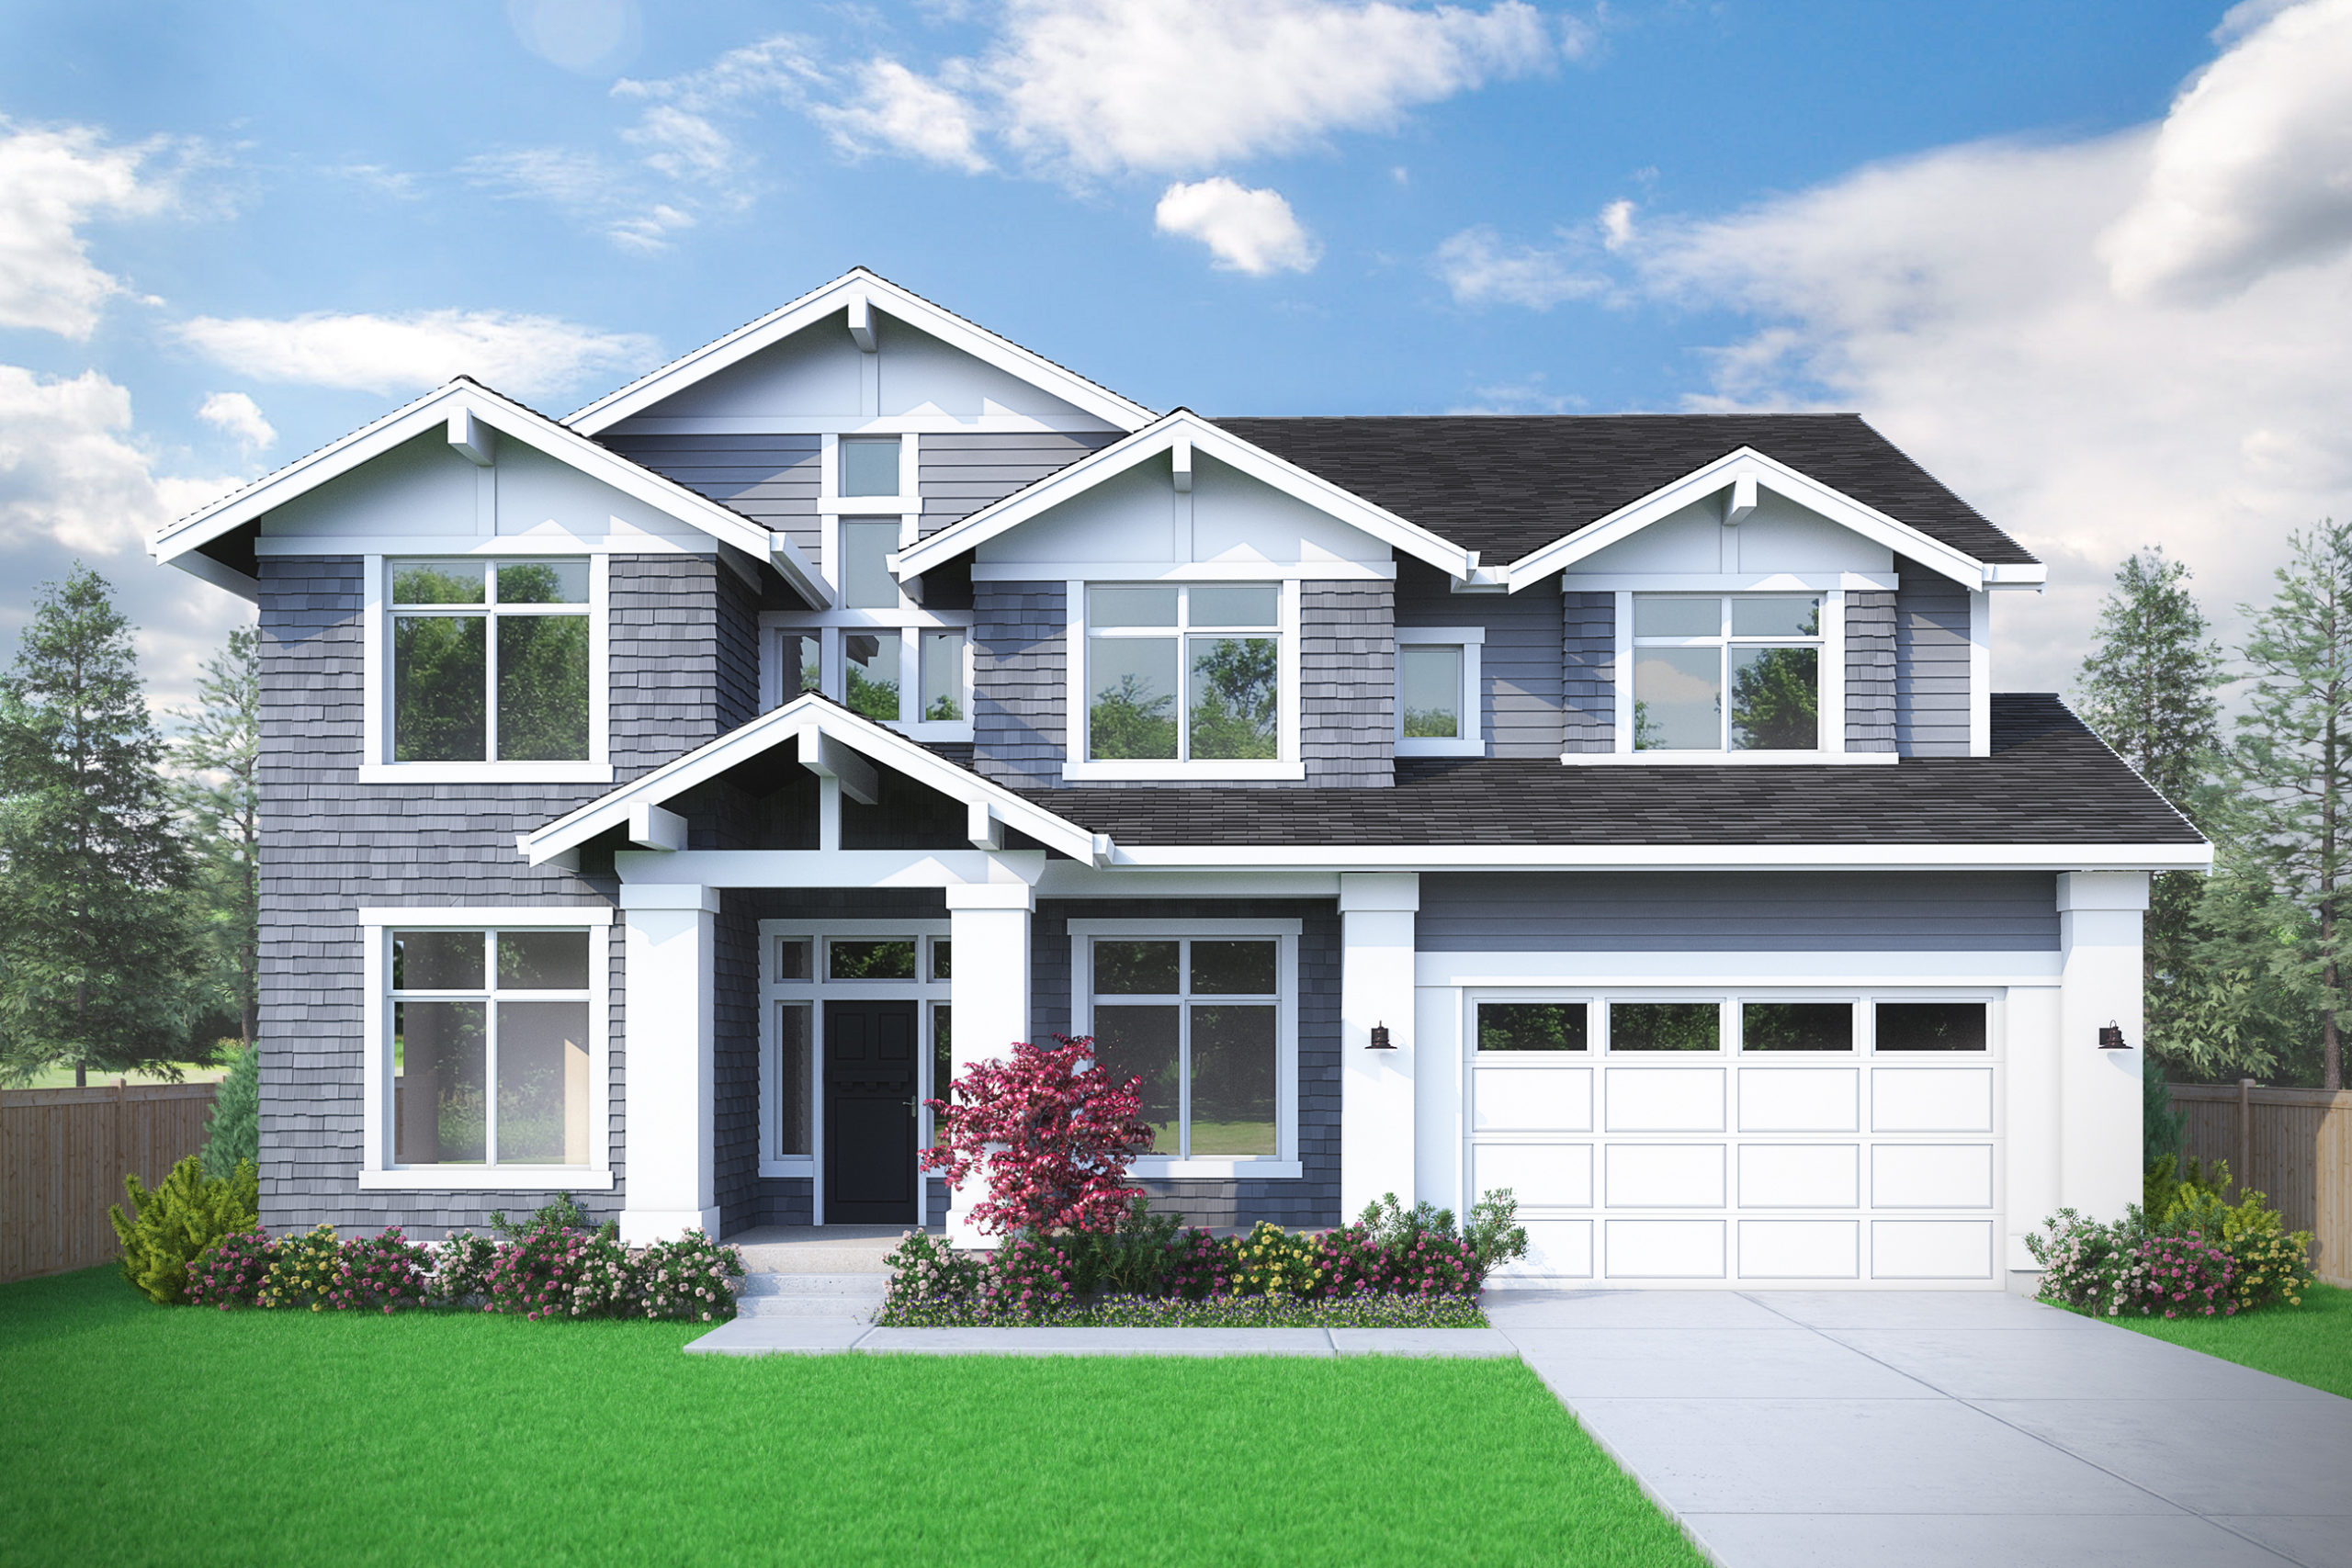 View our new luxury home construction on 1304 142nd PL SE, in Bellevue, WA from MN Custom Homes